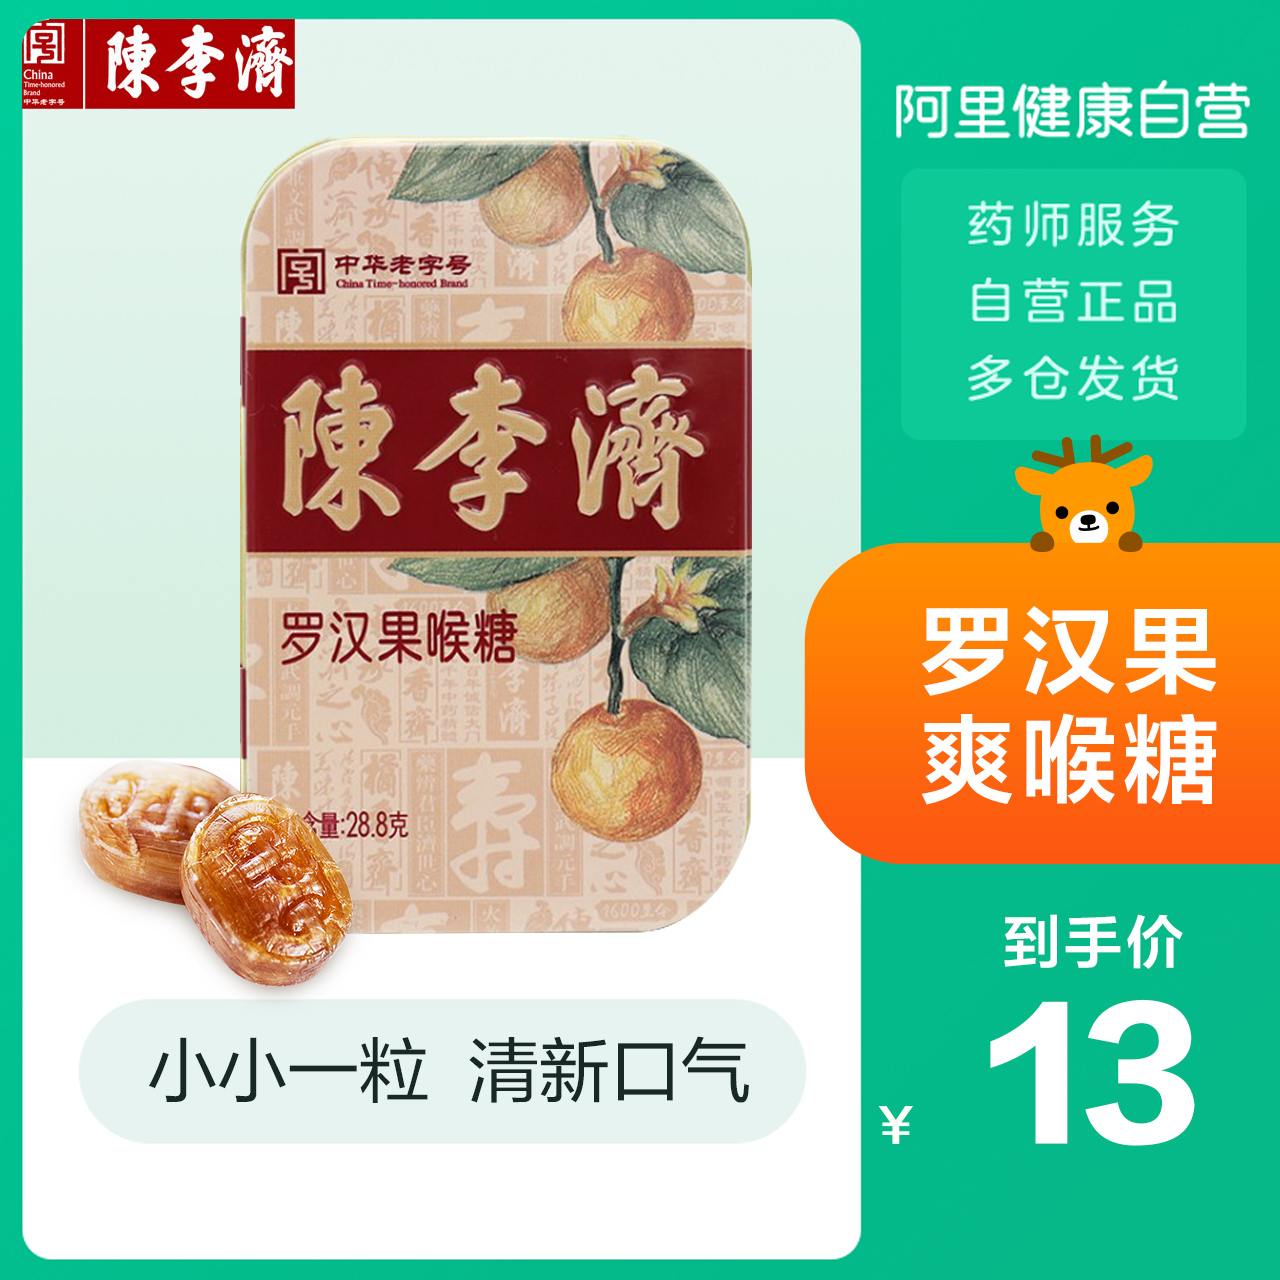 Chen Liji throat candy Lohan fruit throat candy snack candy throat tablet fresh breath lozenge hard candy iron box